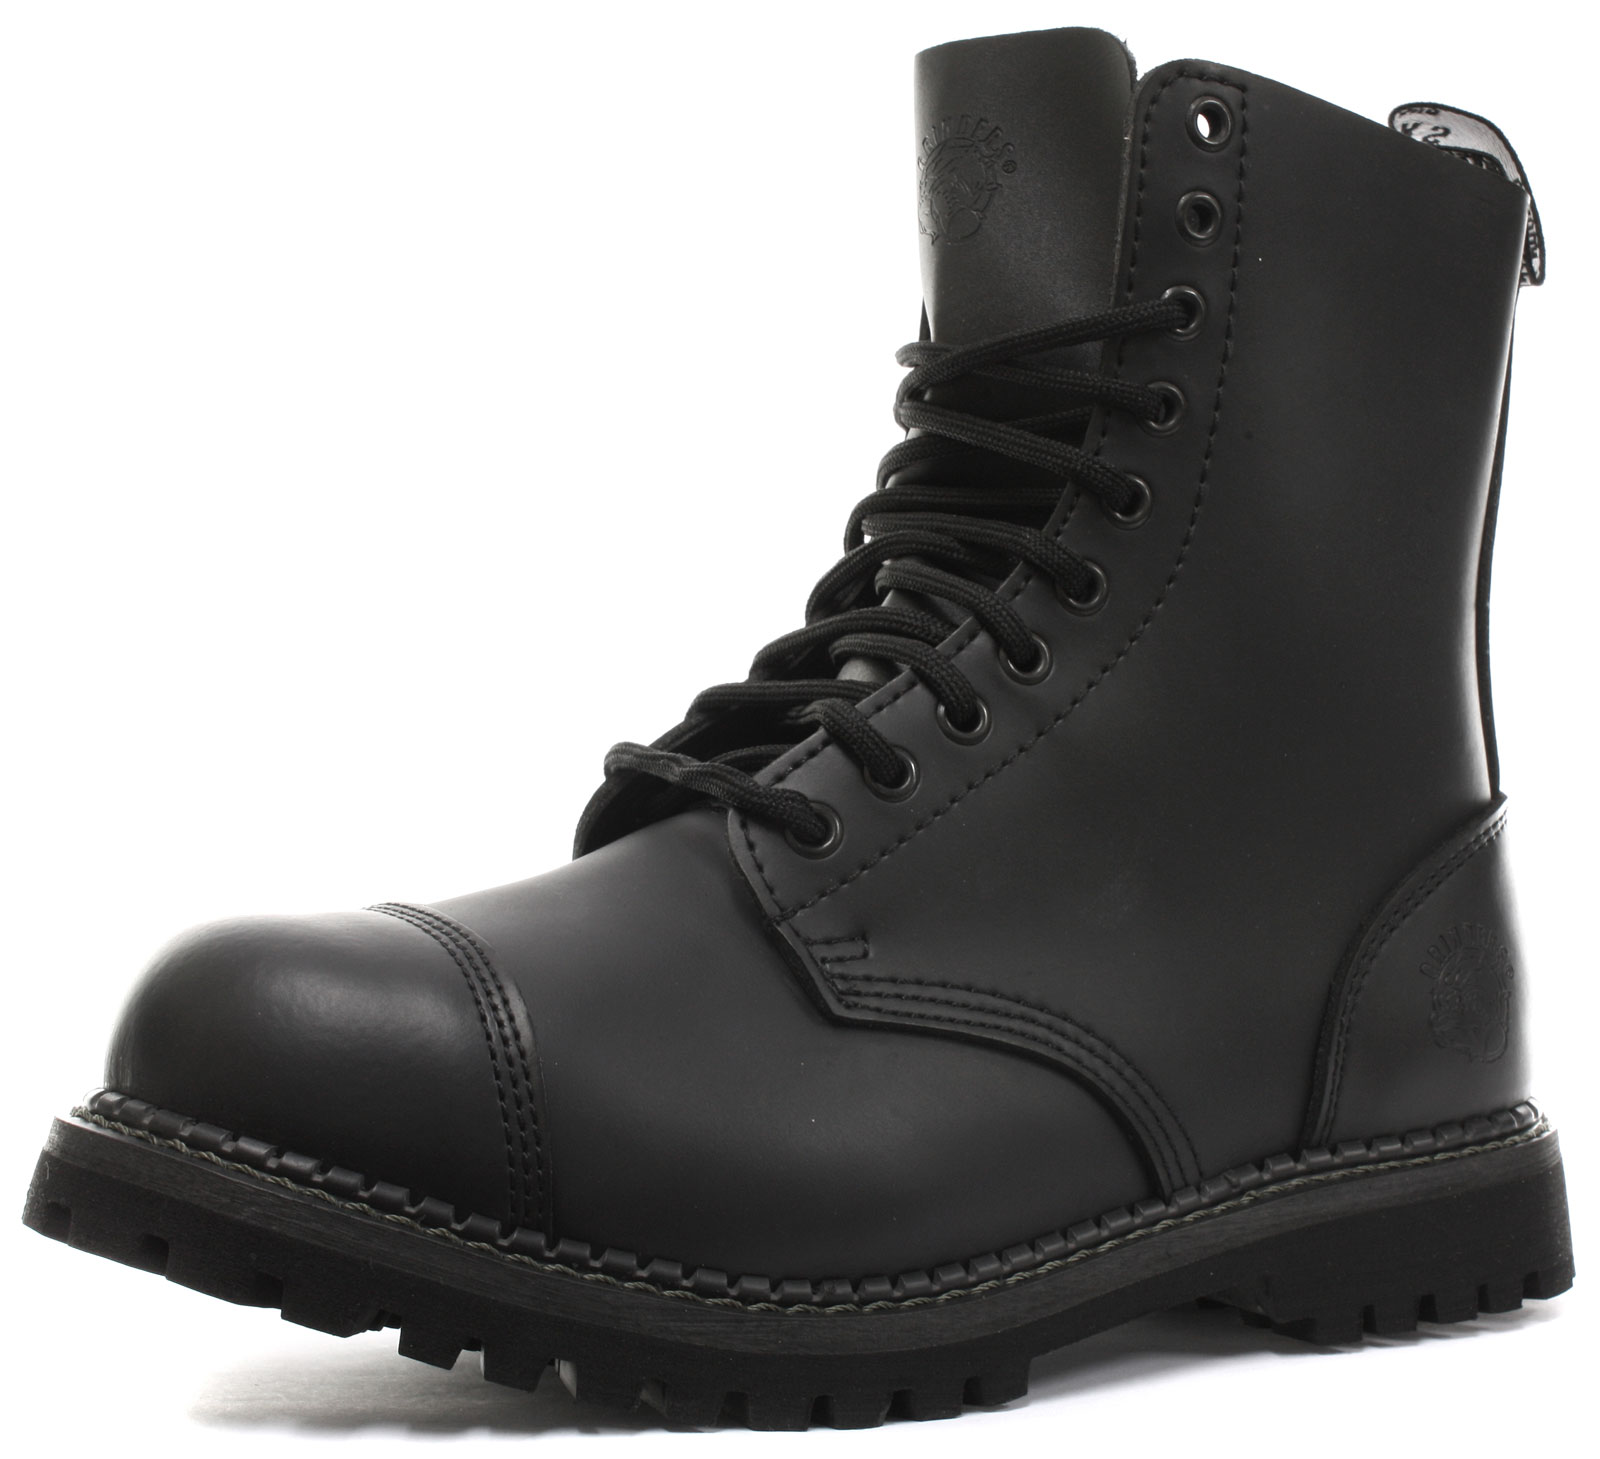 Grinders Stag 2015 Matte Finish Mens Safety Steel Toe Cap Boots ALL SIZES